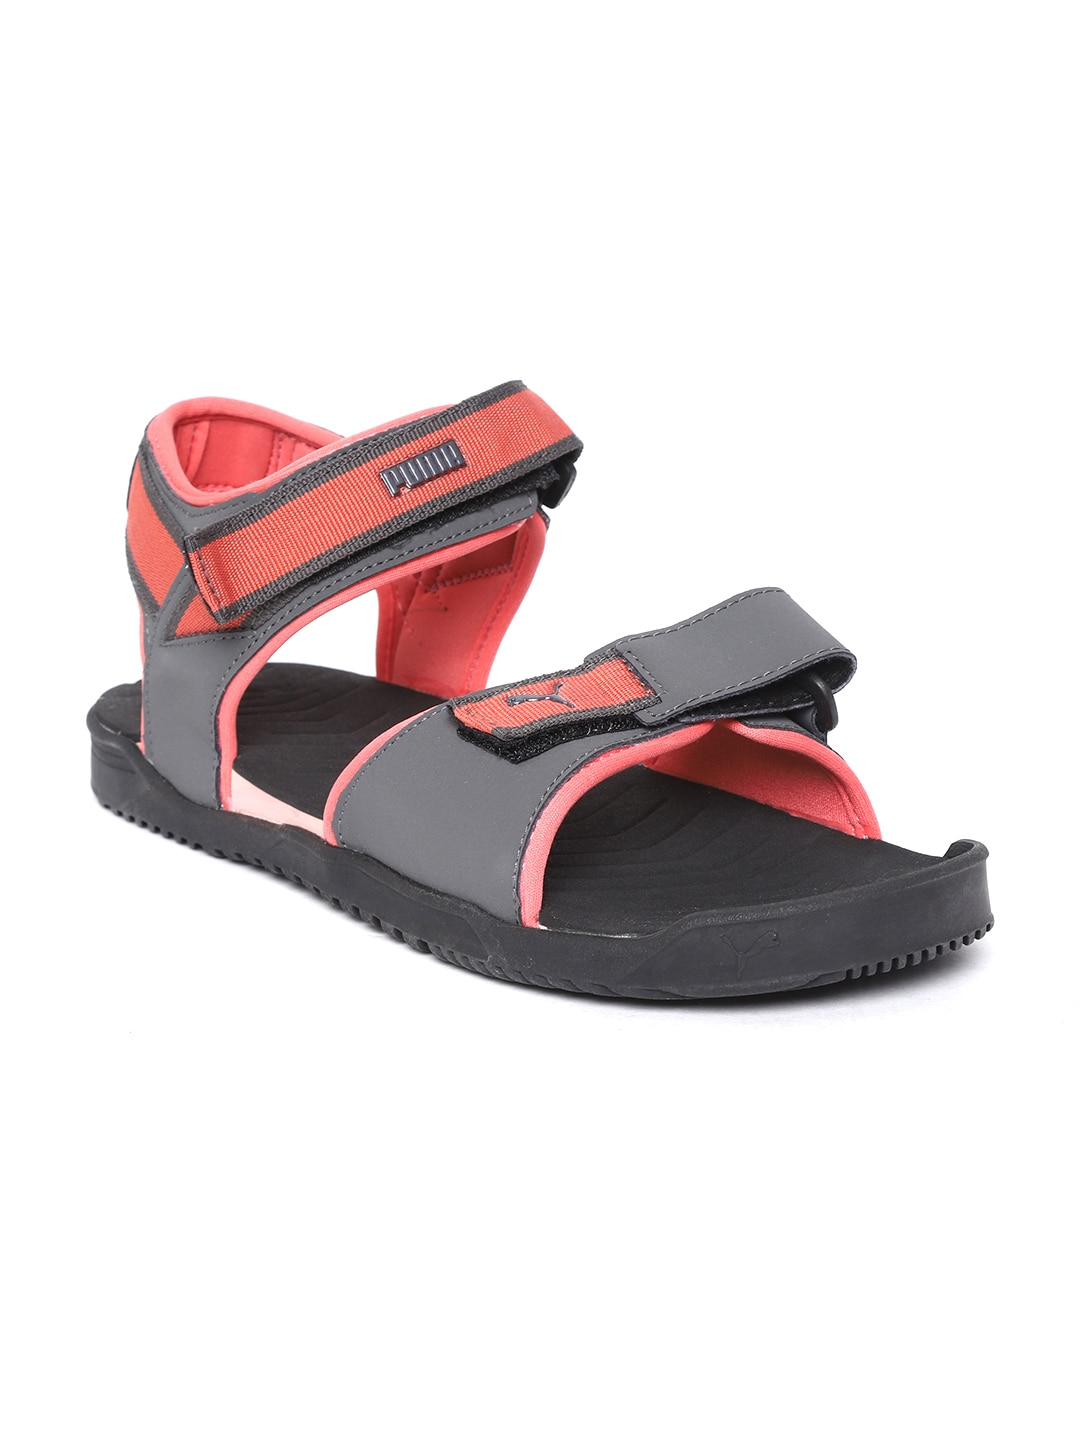 ebed3d6a2 Puma Sandal - Buy Puma Sandal Online in India